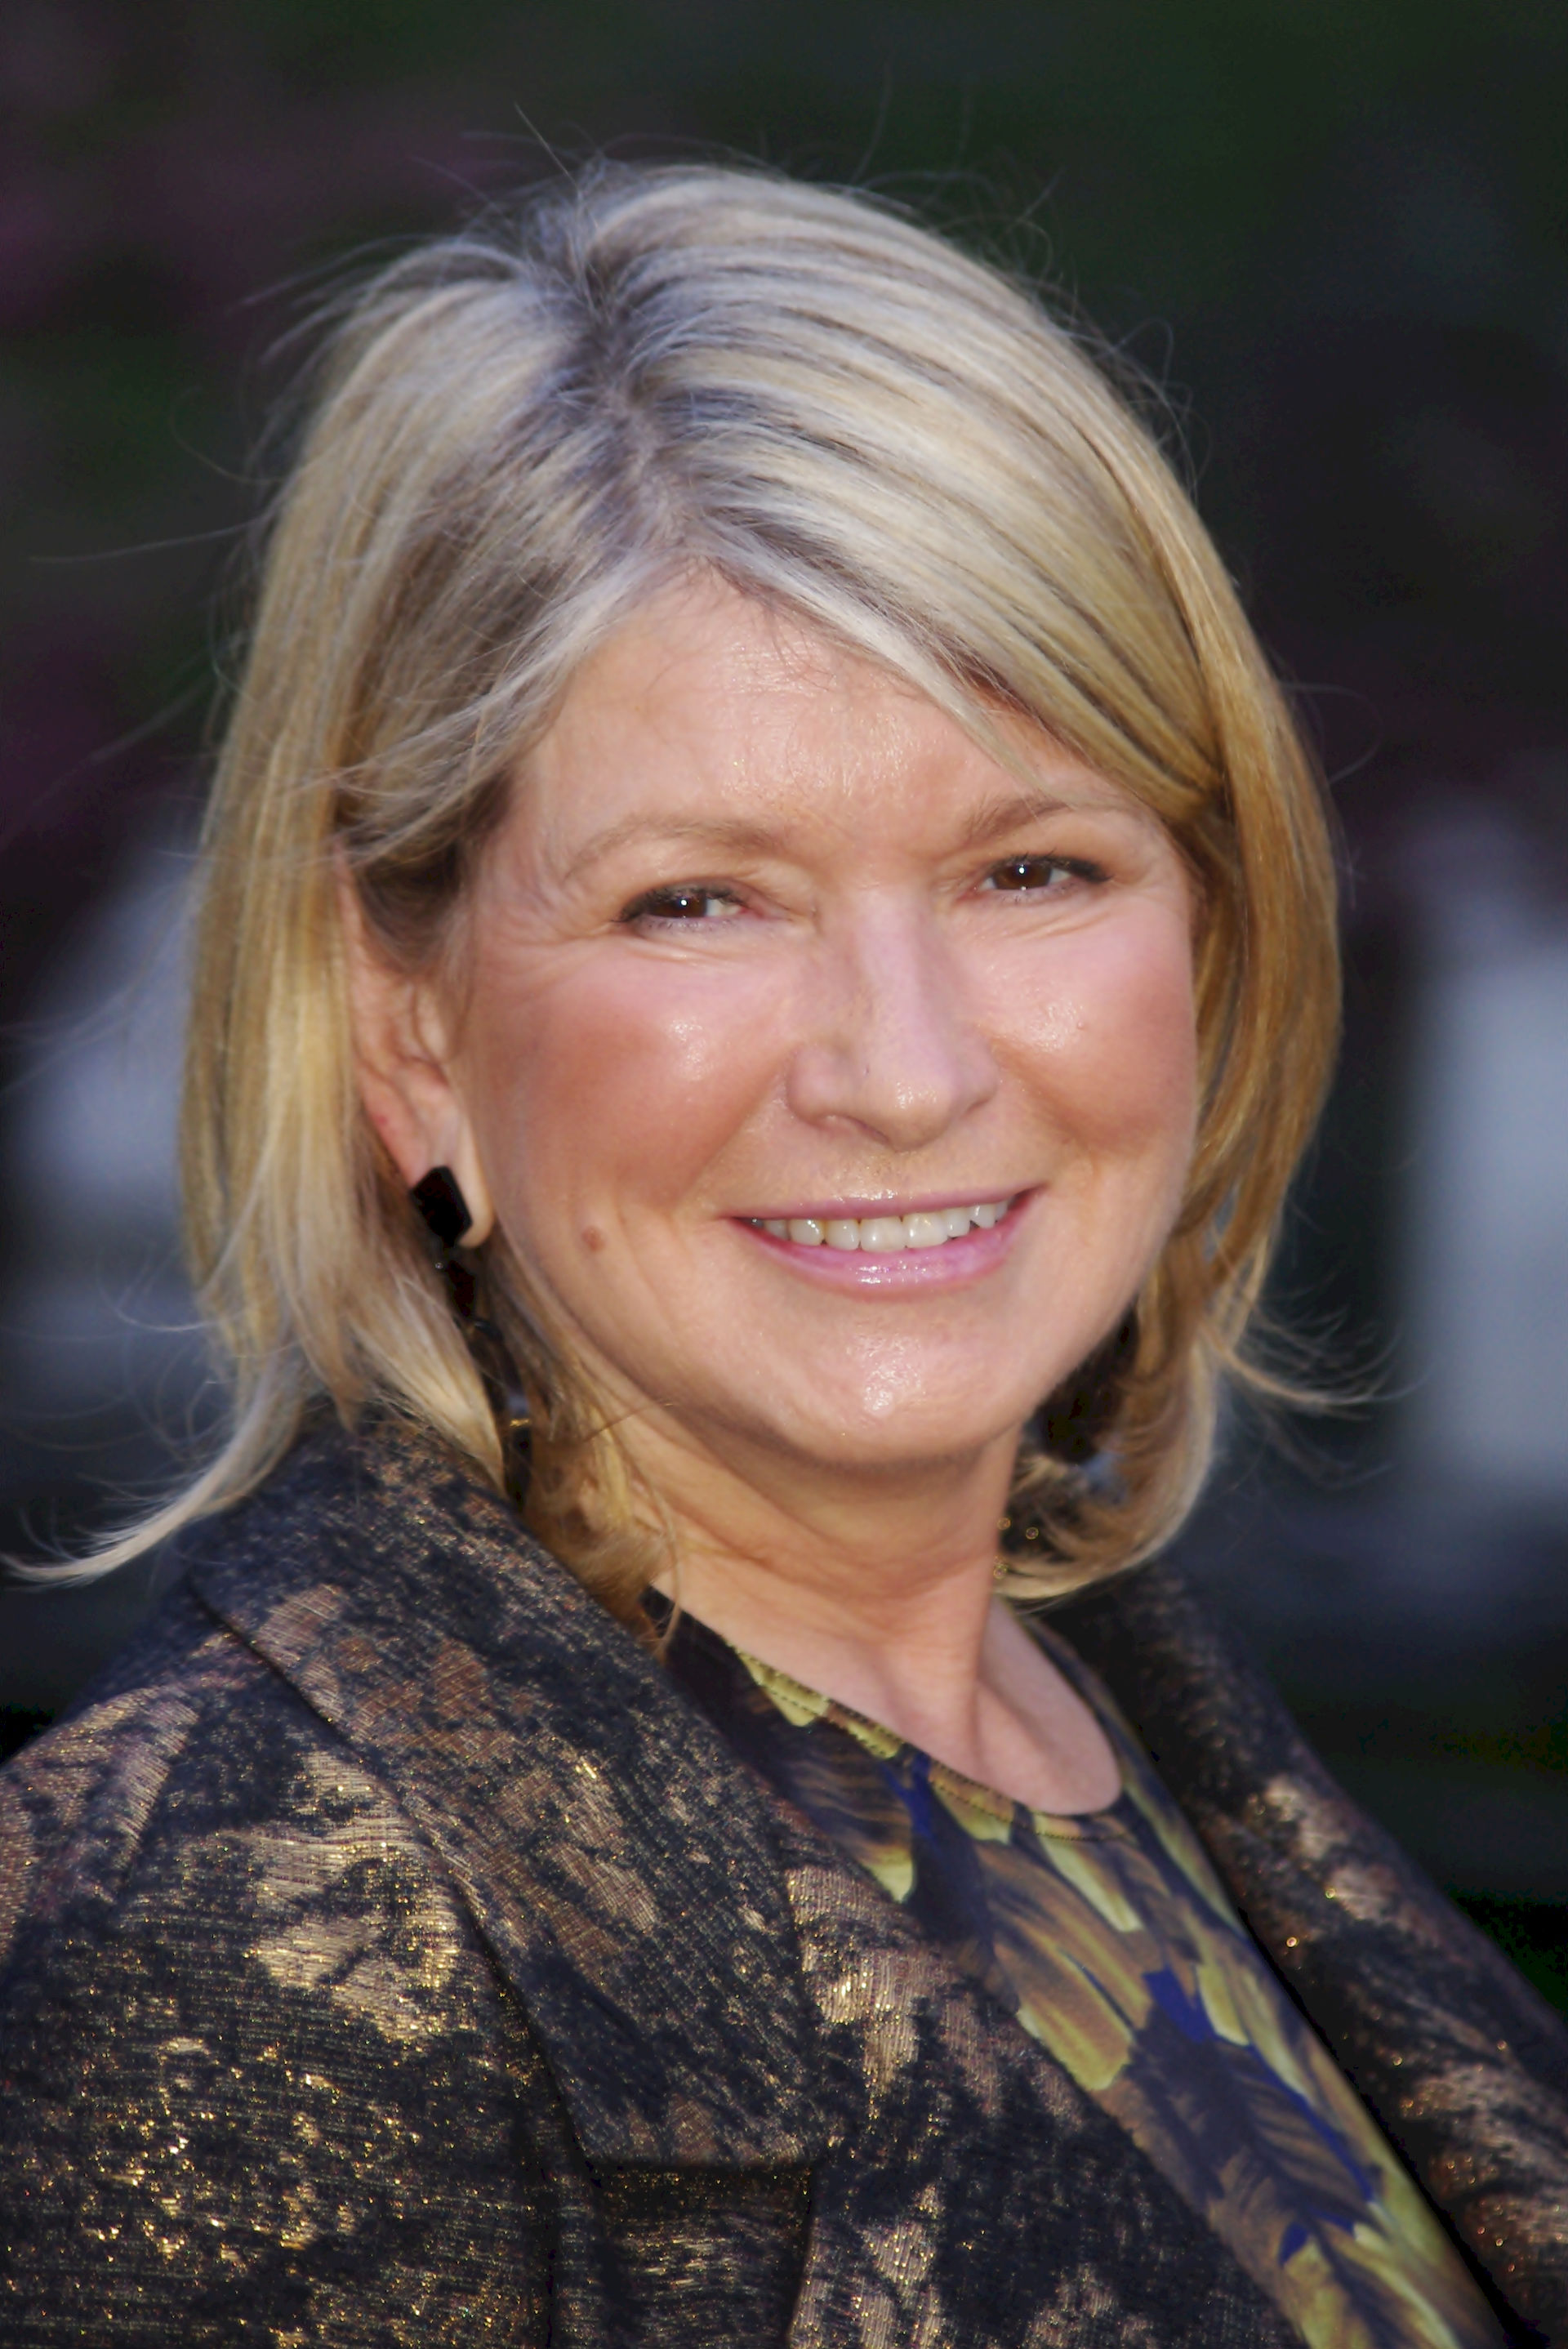 Photo of Martha Stewart: American businesswoman, writer, television personality, and former fashion model